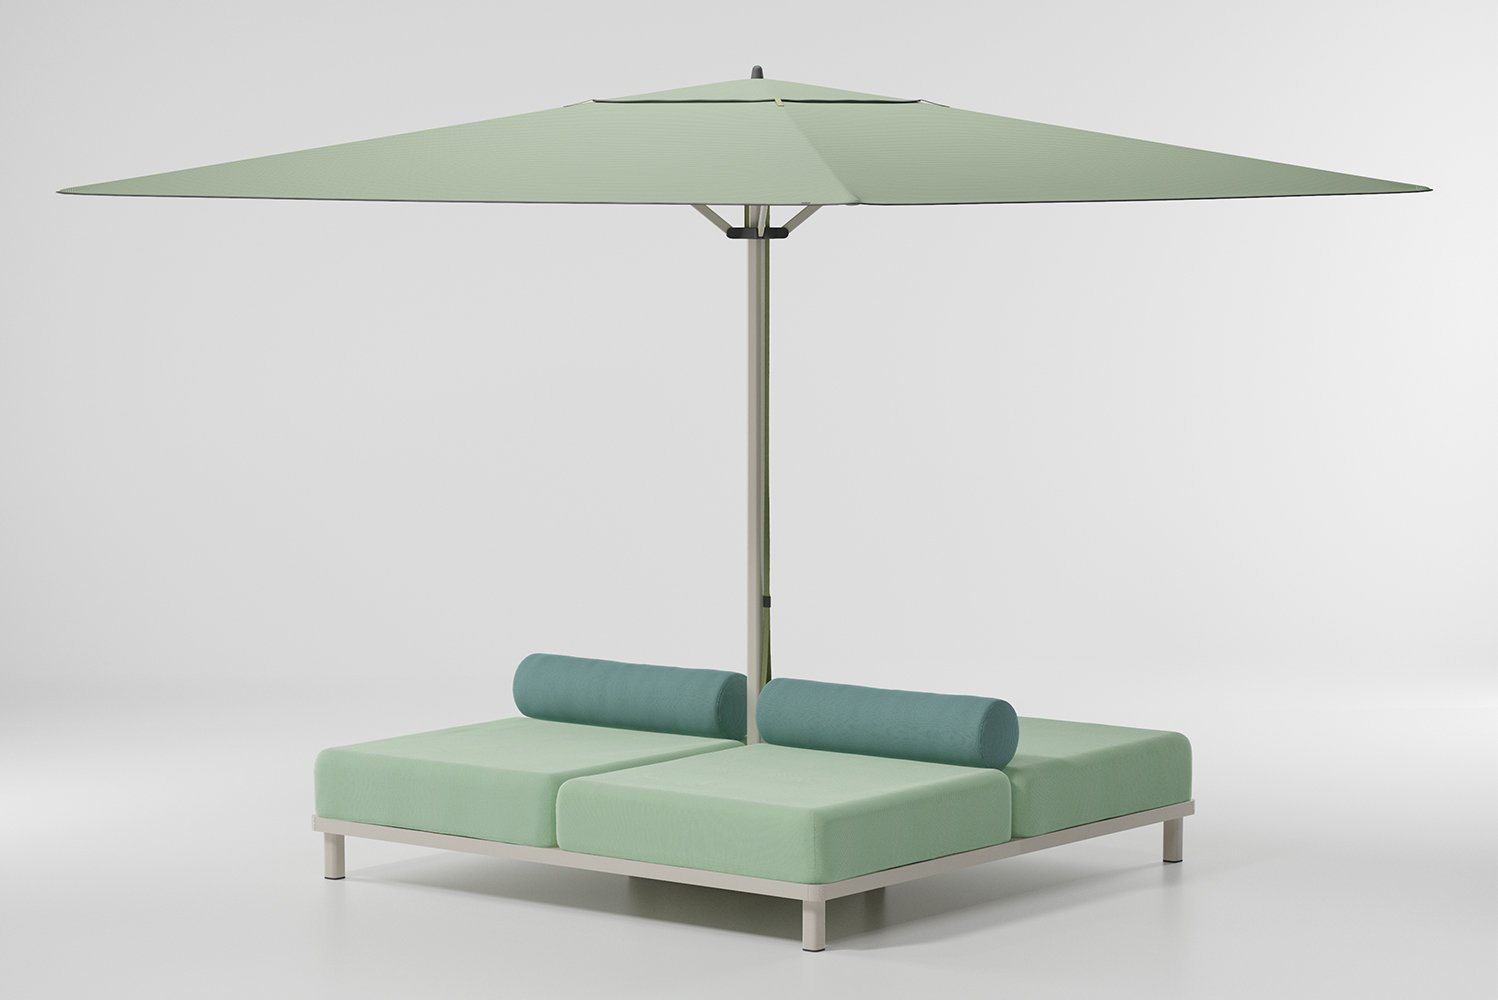 The Meteo added three functional adaptations to the parasol's base: a sofa/daybed, a table or a planter.